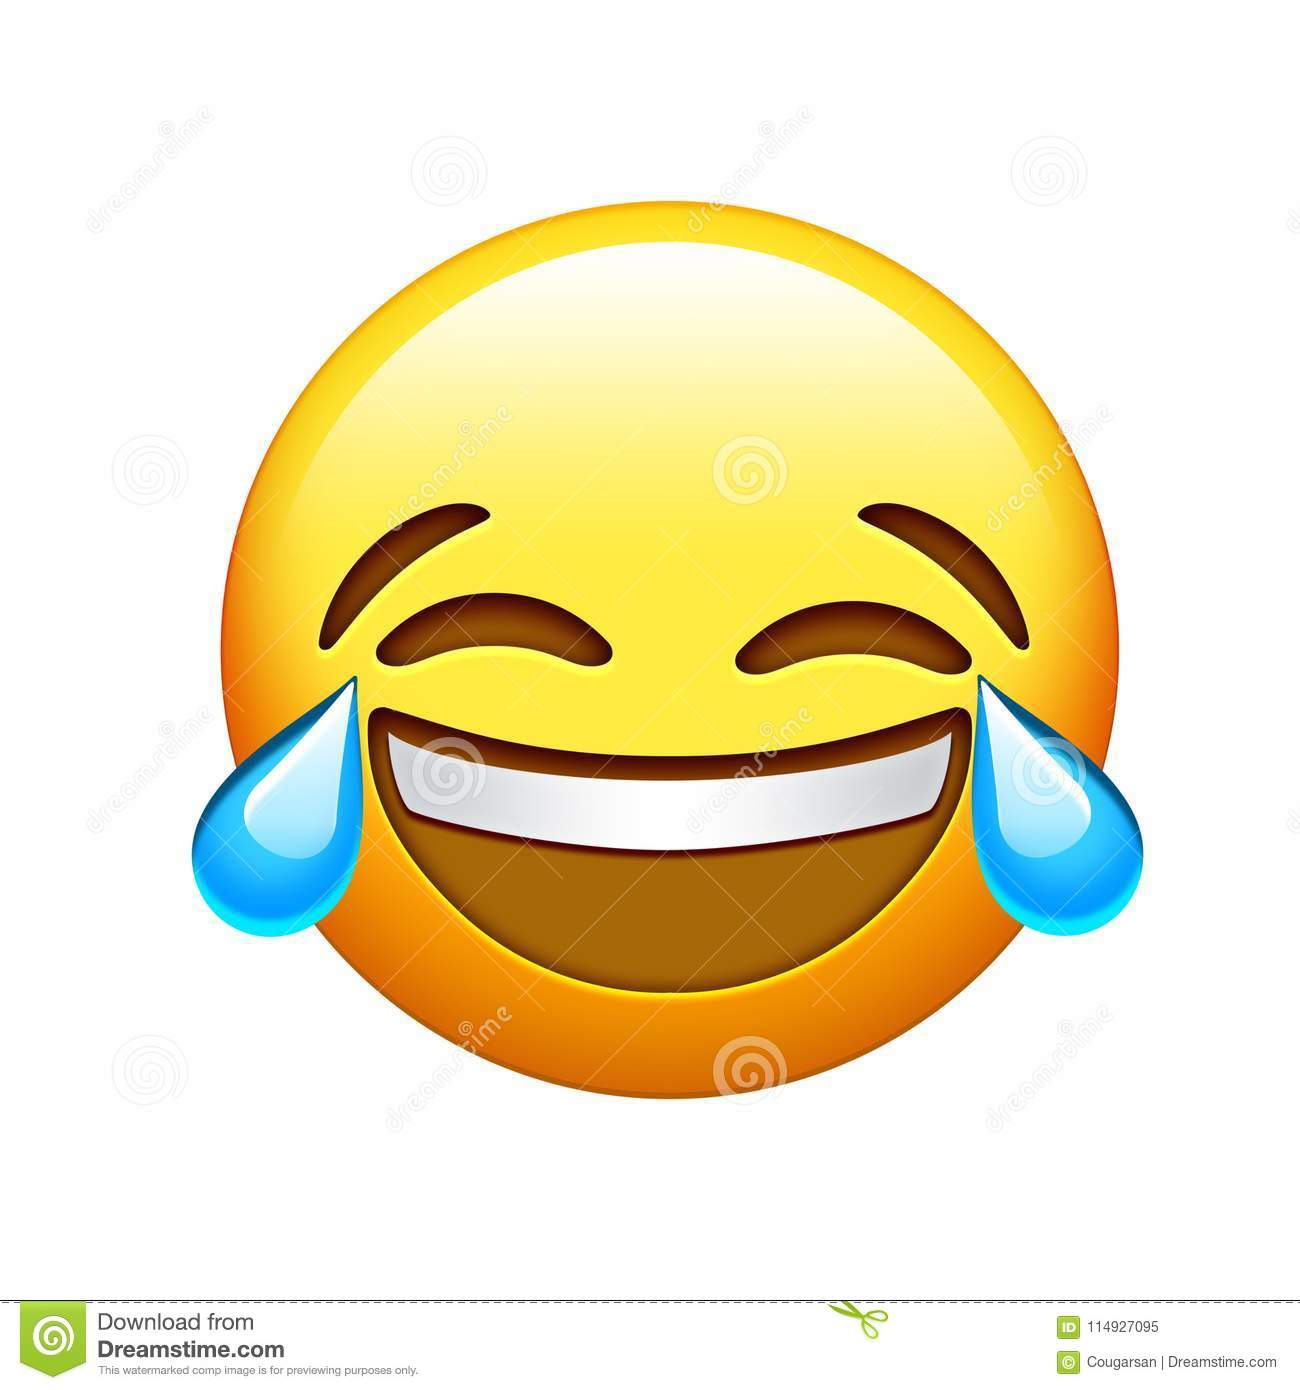 Download Emoji Yellow Face Lol Laugh And Crying Tear Icon Stock Illustration